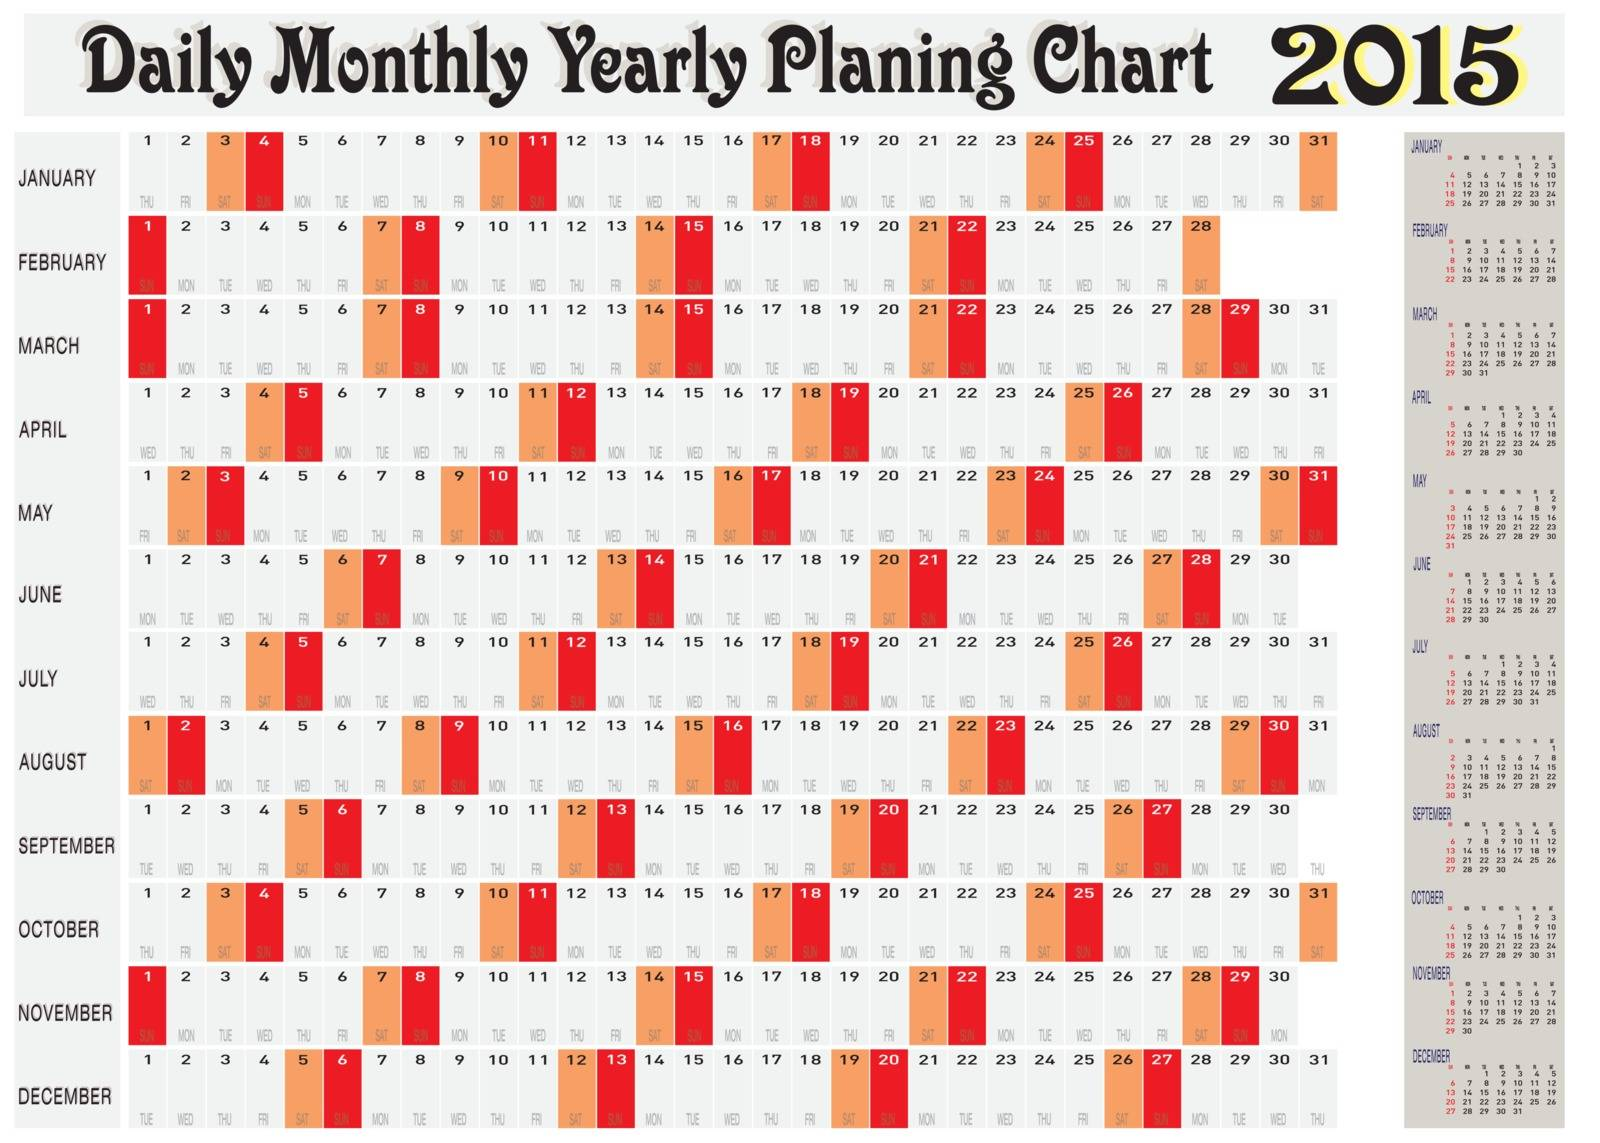 Vector of Planing Chart of Daily Monthly Yearly 2015.